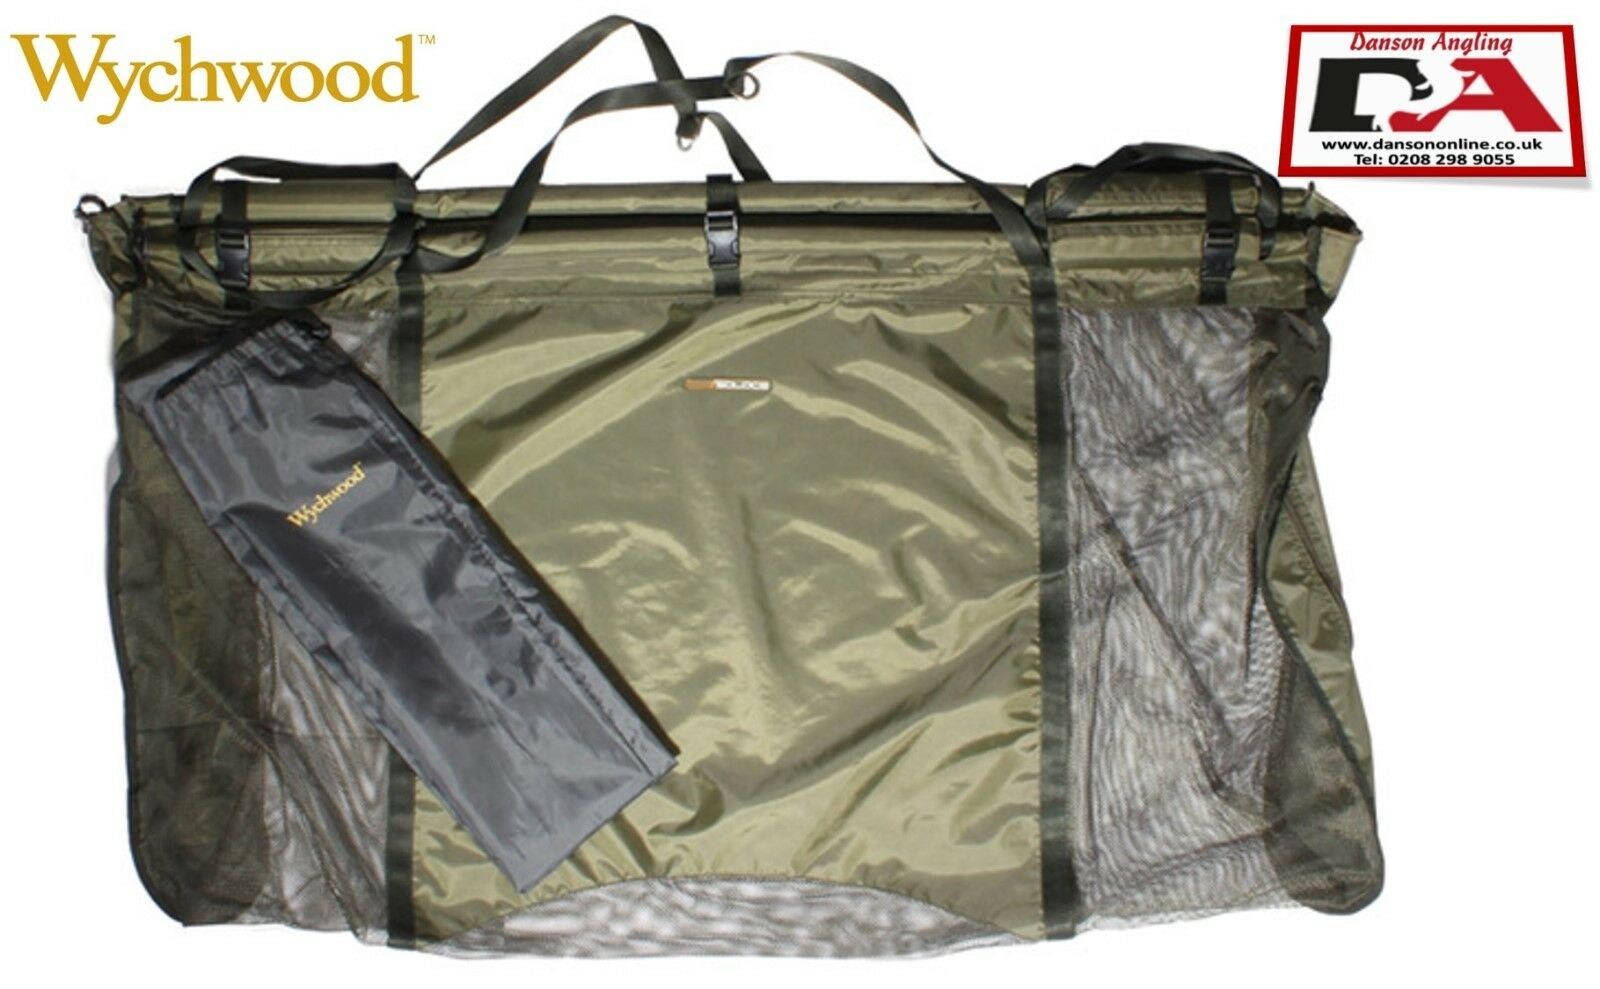 Wychwood Floating Weigh Sling Q6091 New Carp Weigh Sling